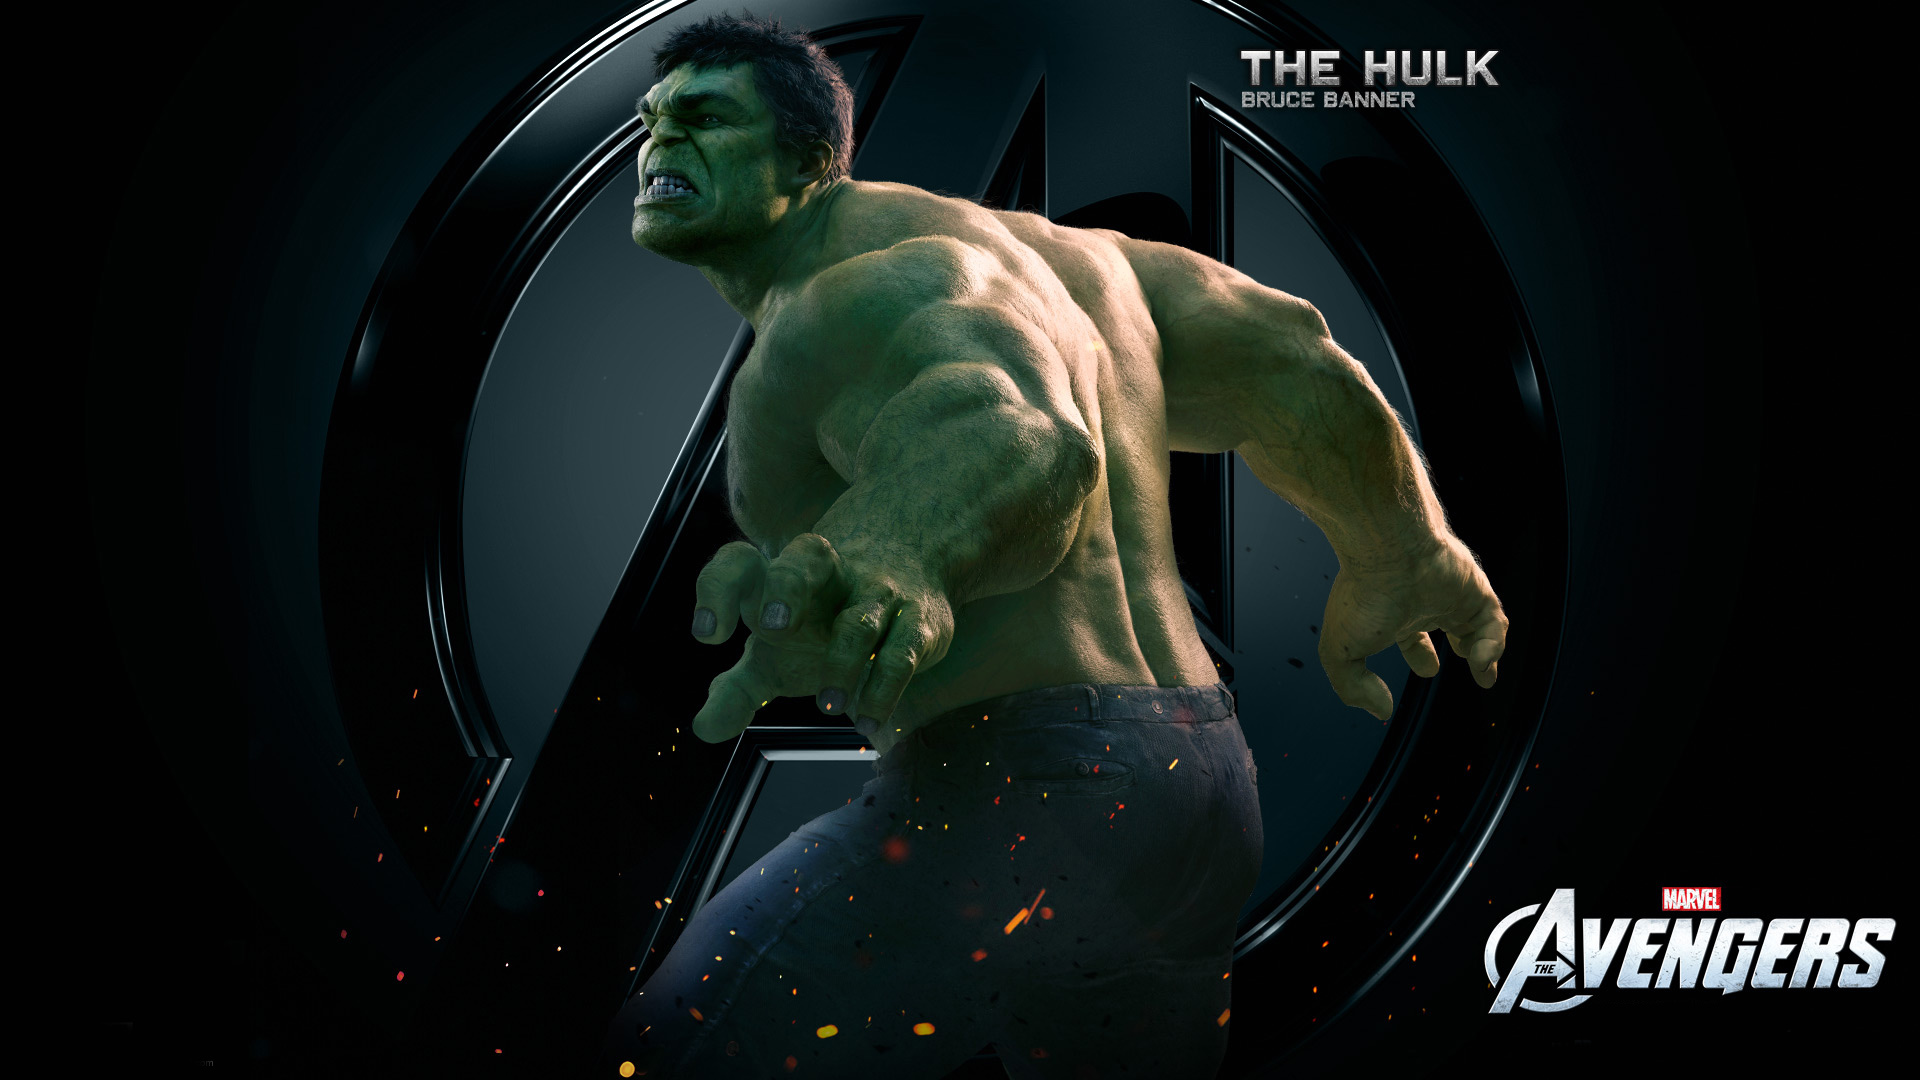 The Hulk Bruce Banner 2315.03 Kb